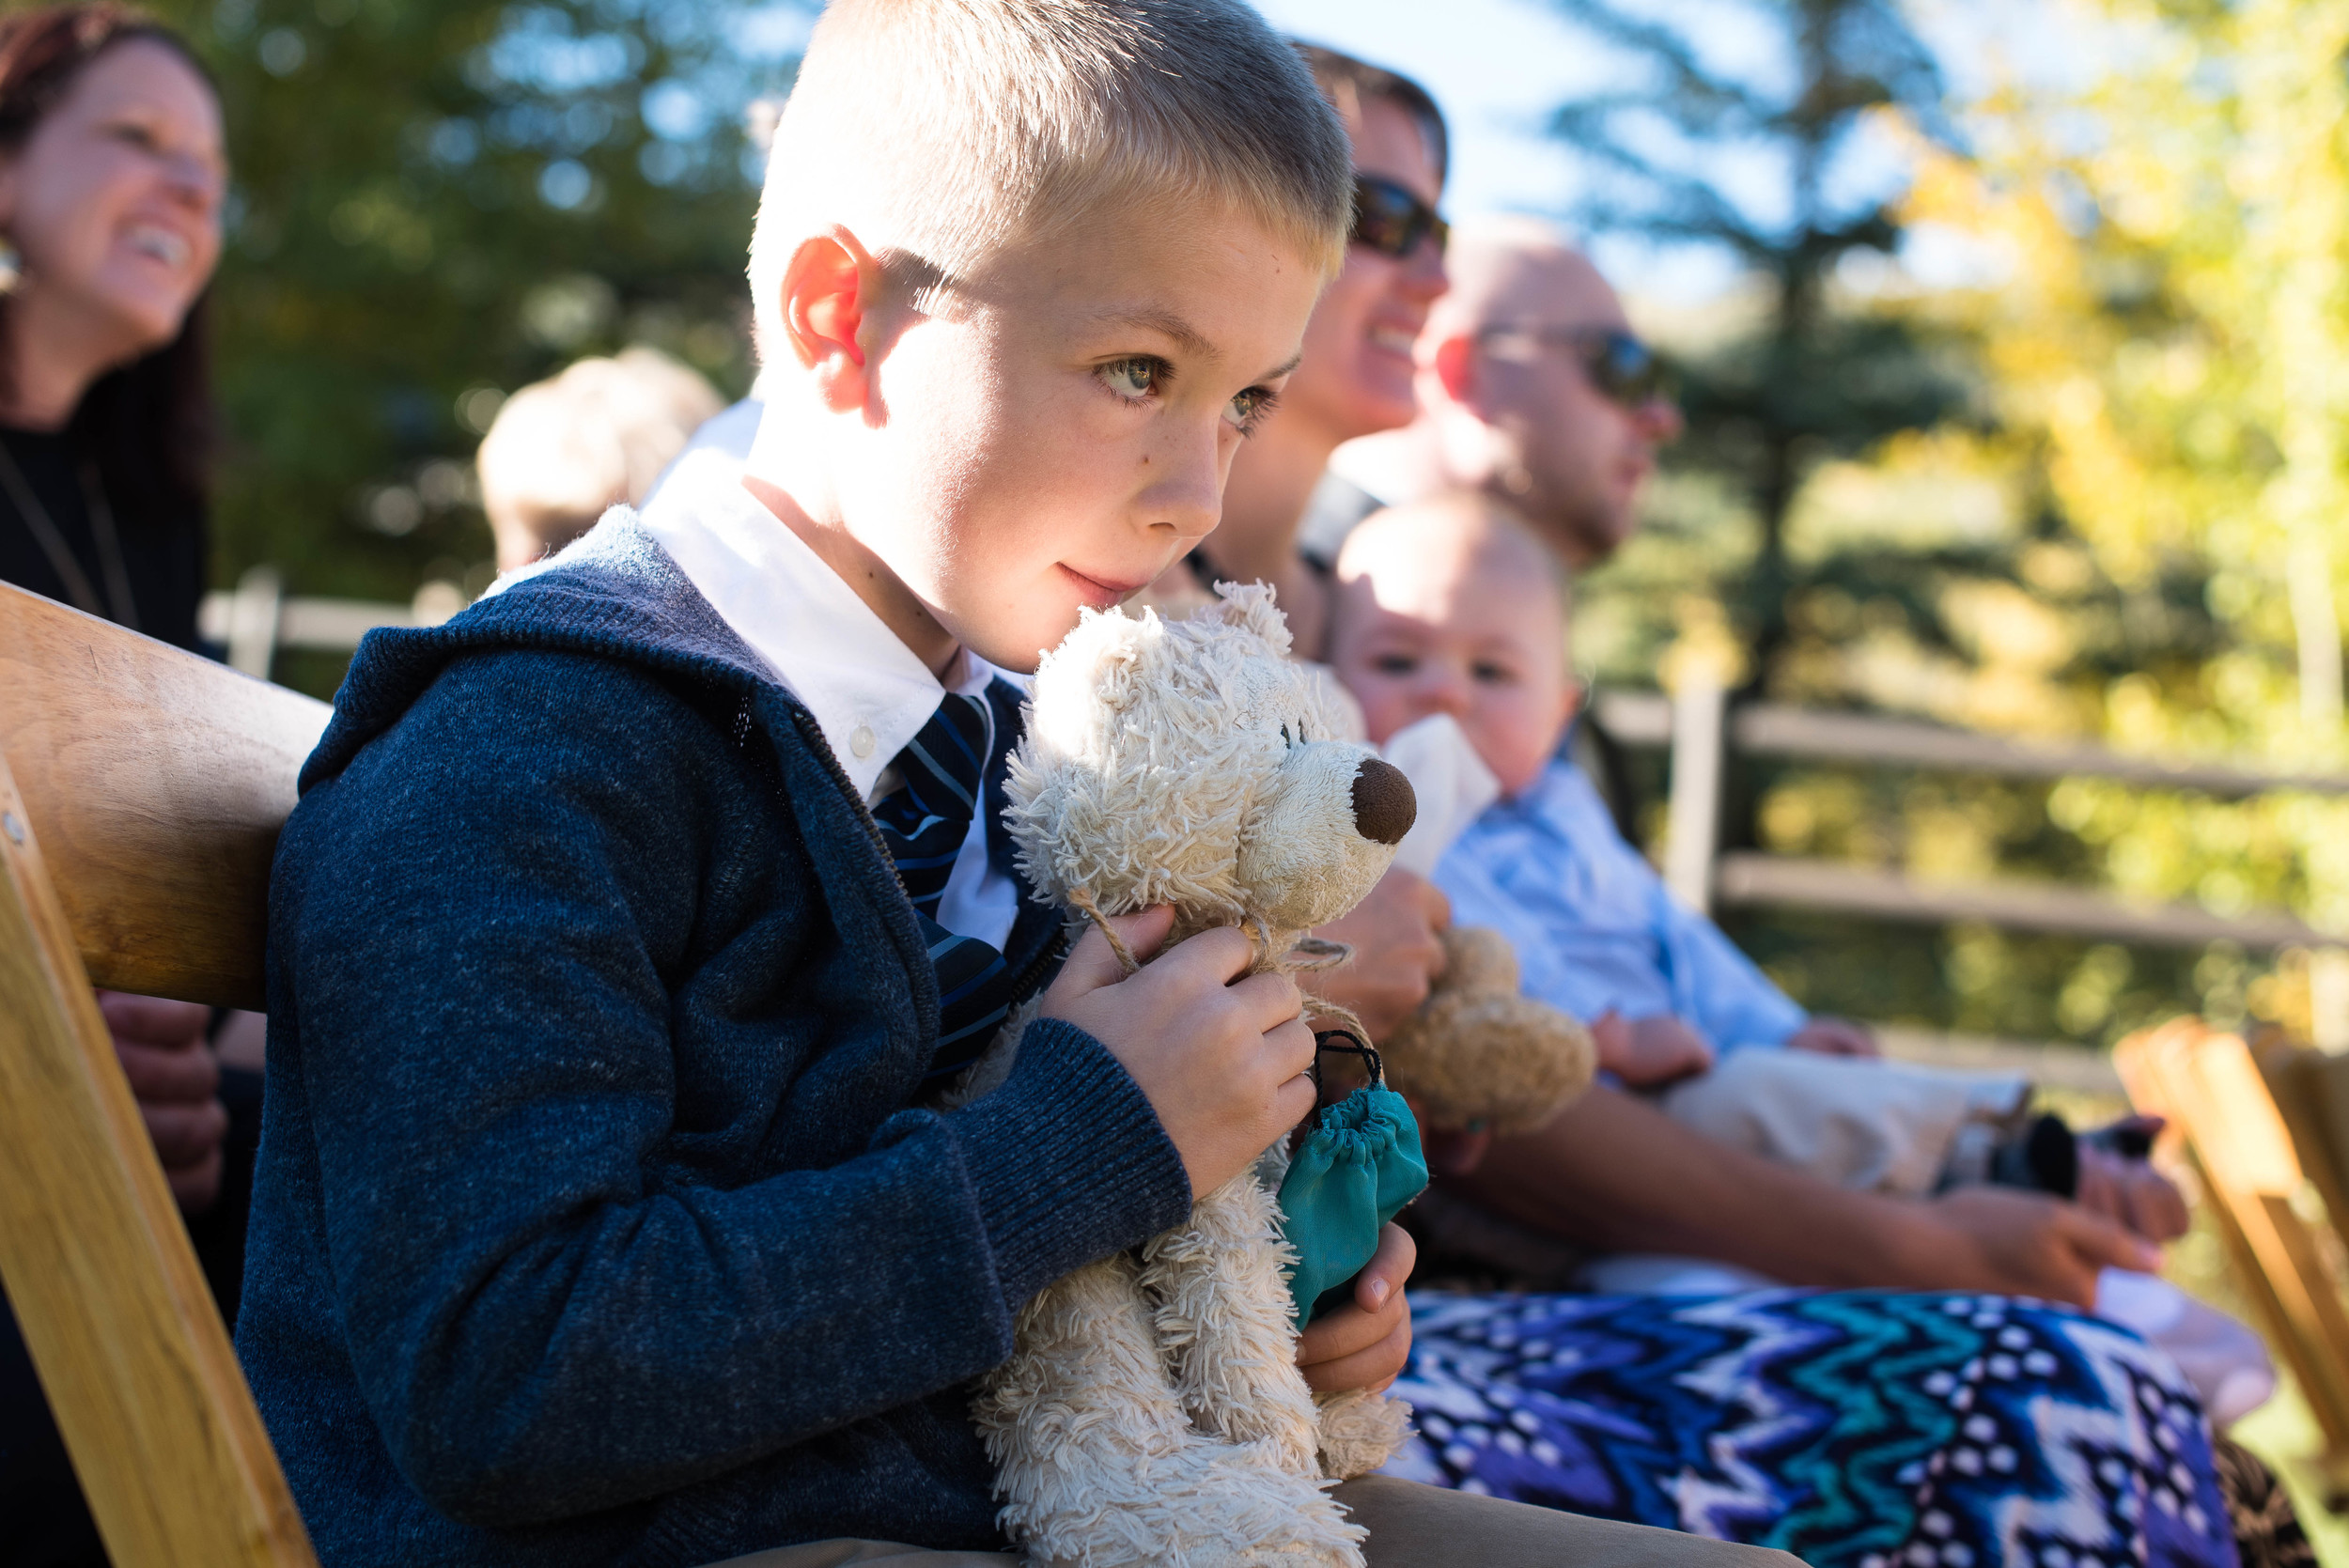 The event was peppered with nods to Teghan's favorite animal, the bear.